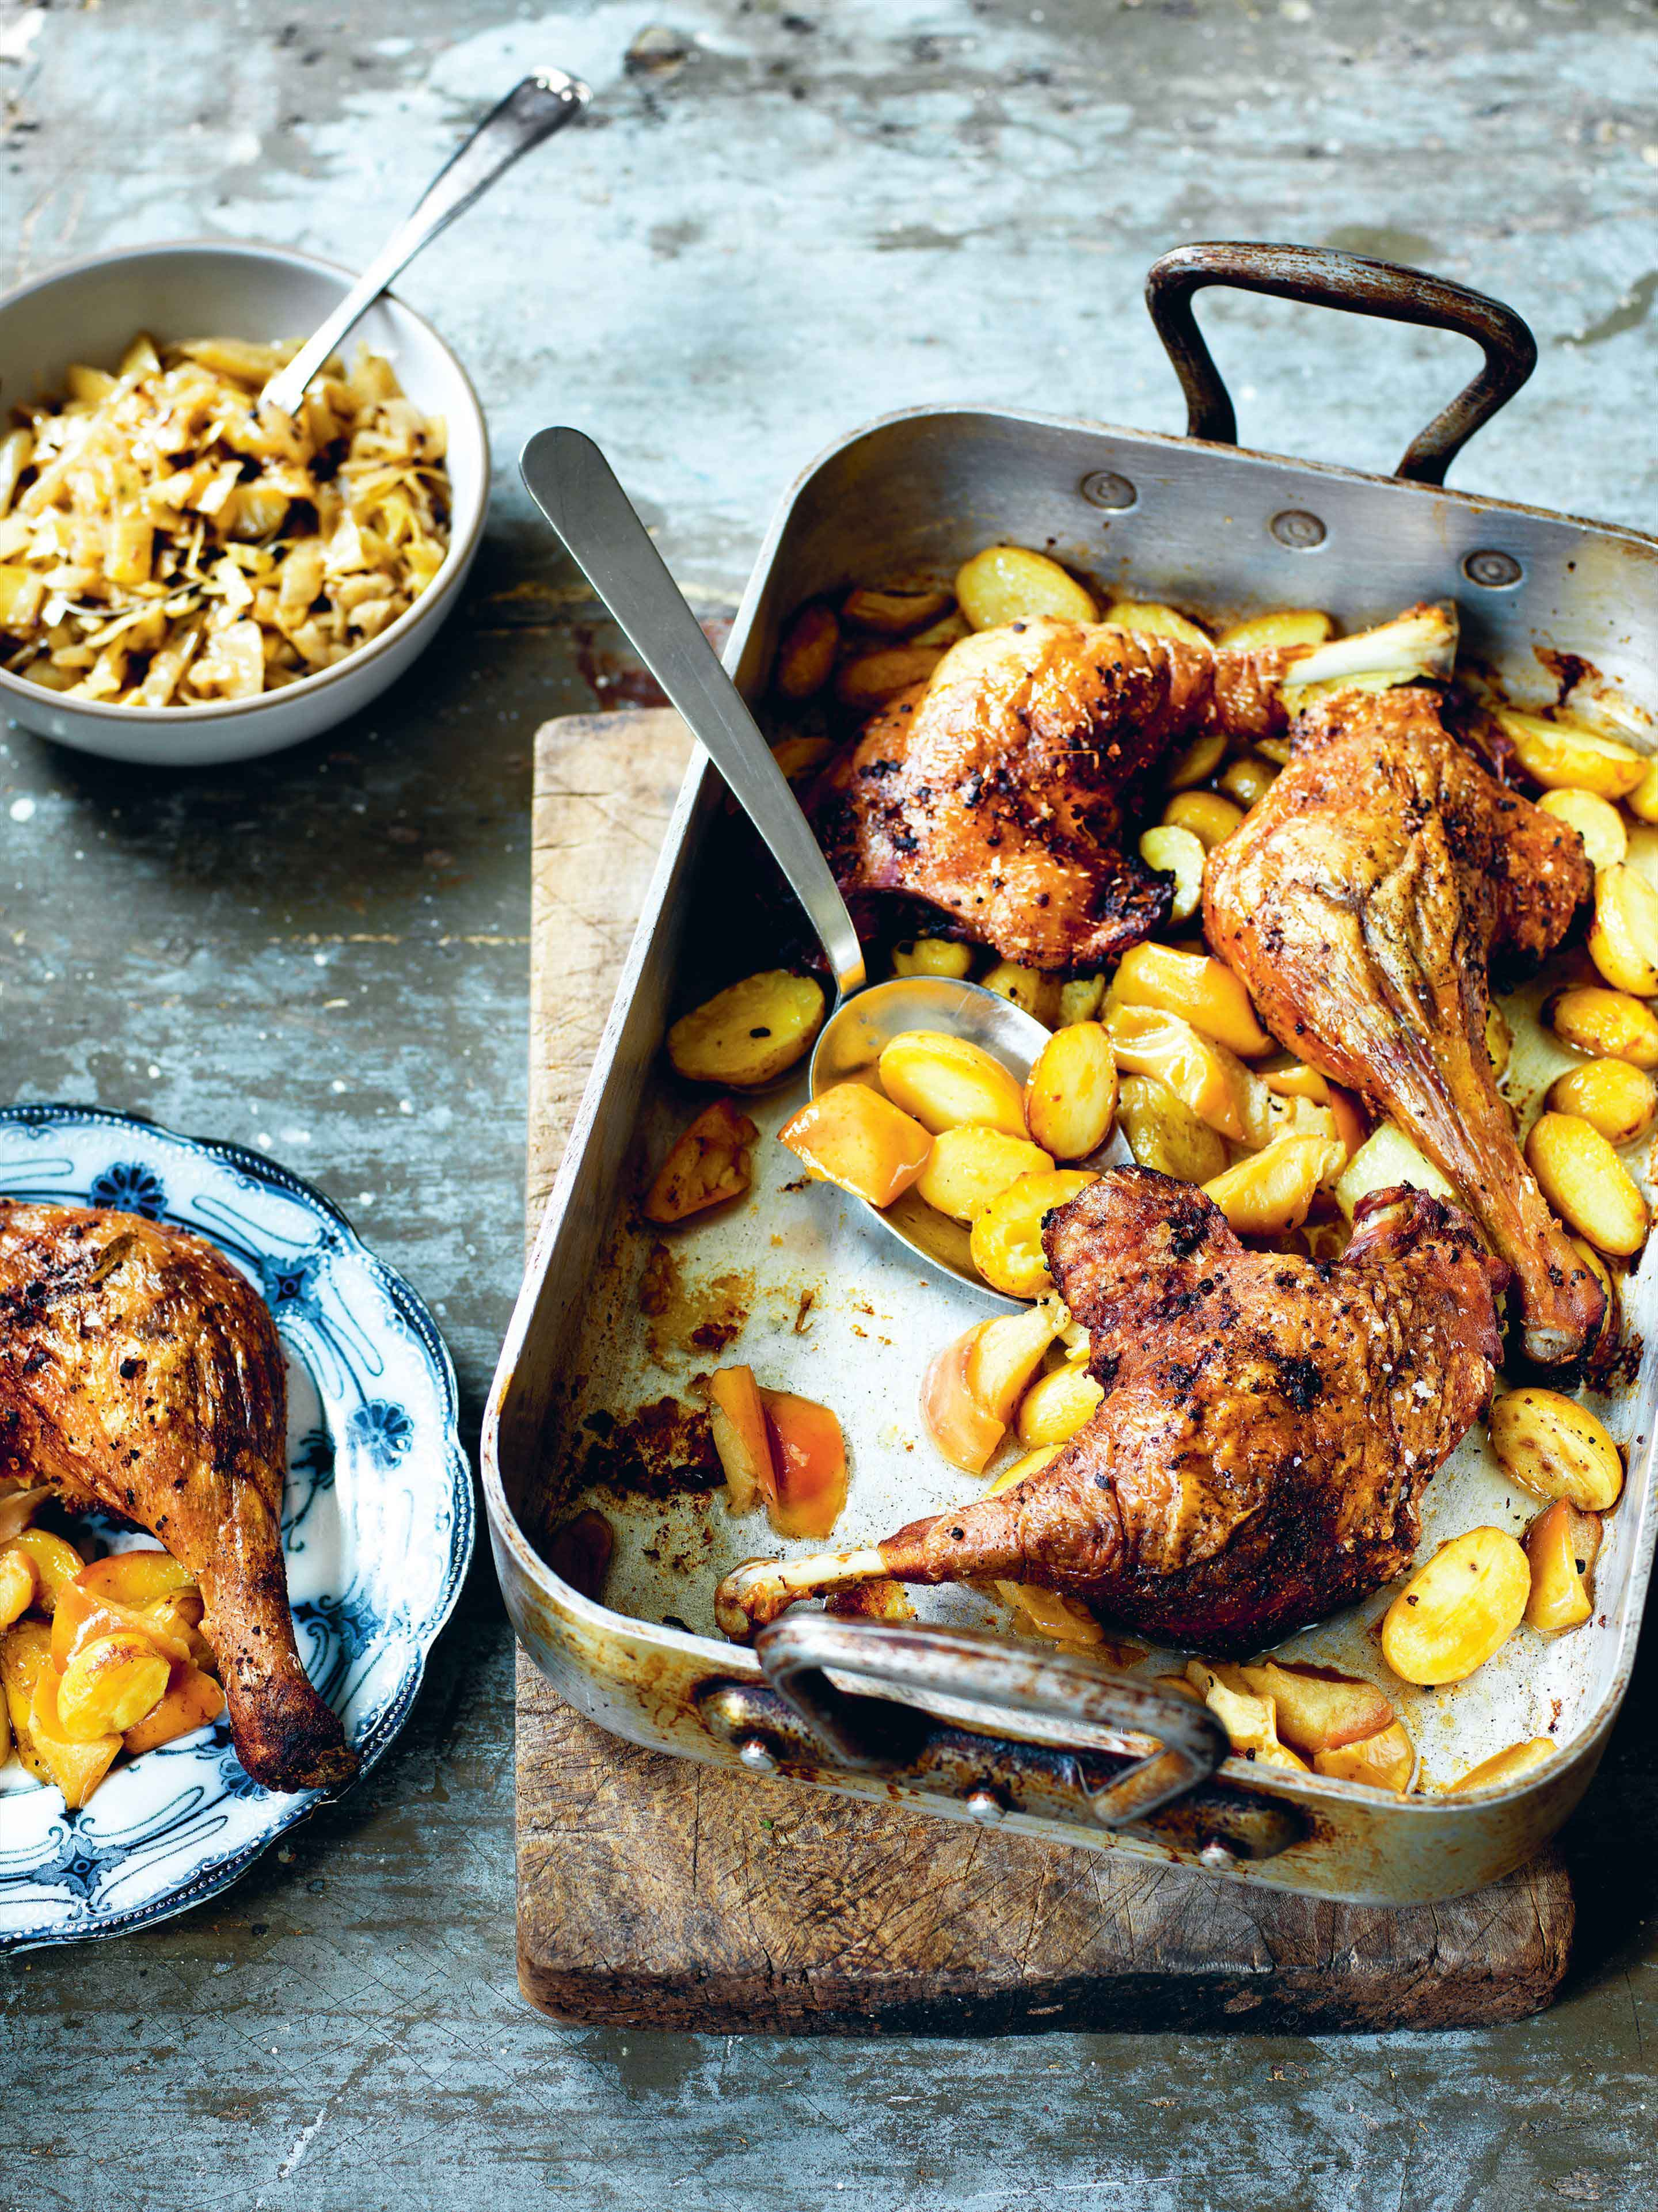 Duck legs with potatoes, apples and brown cabbage